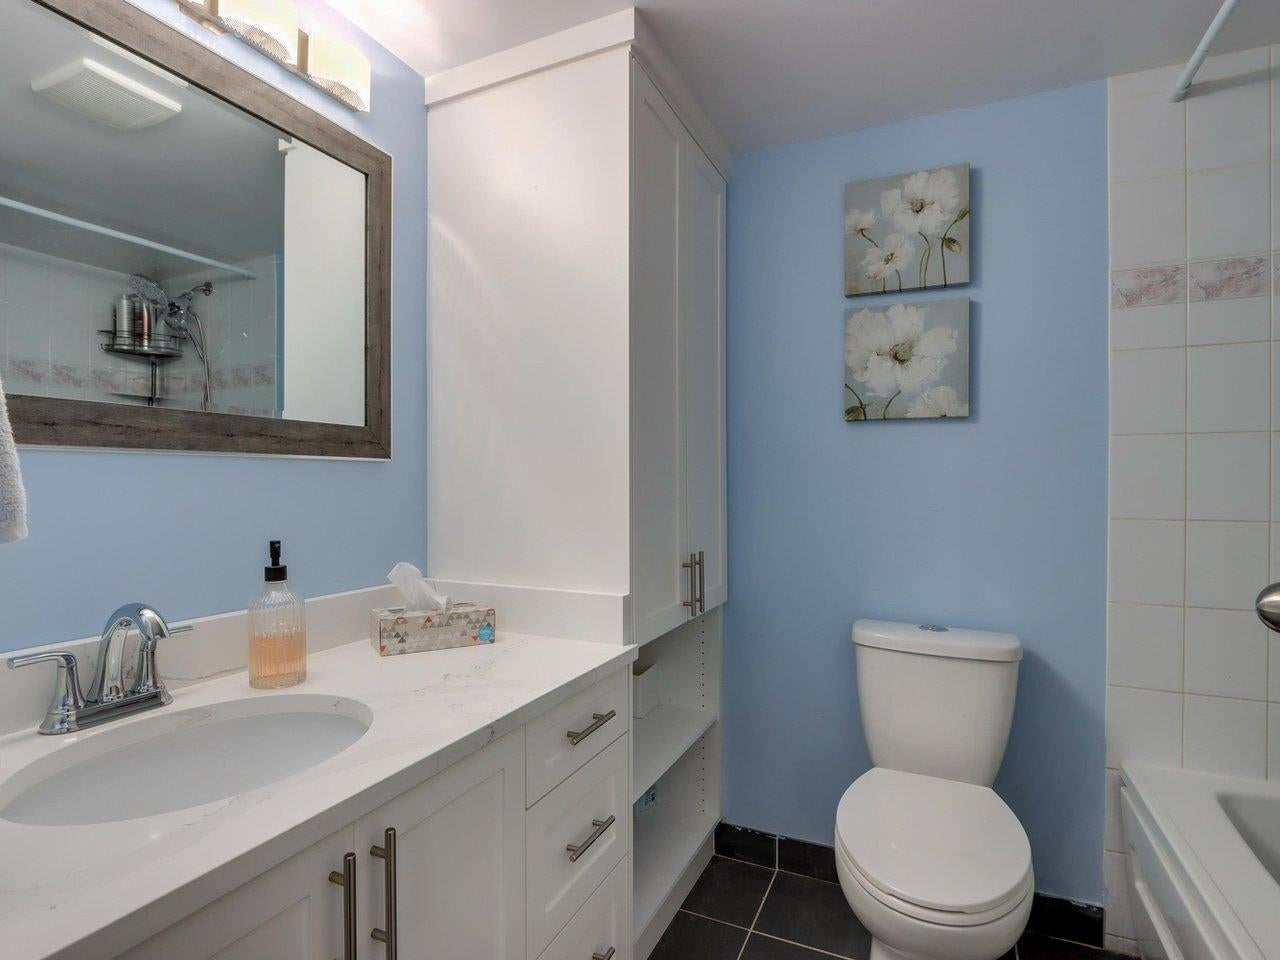 302 412 TWELFTH STREET - Uptown NW Apartment/Condo for sale, 2 Bedrooms (R2625659) - #15